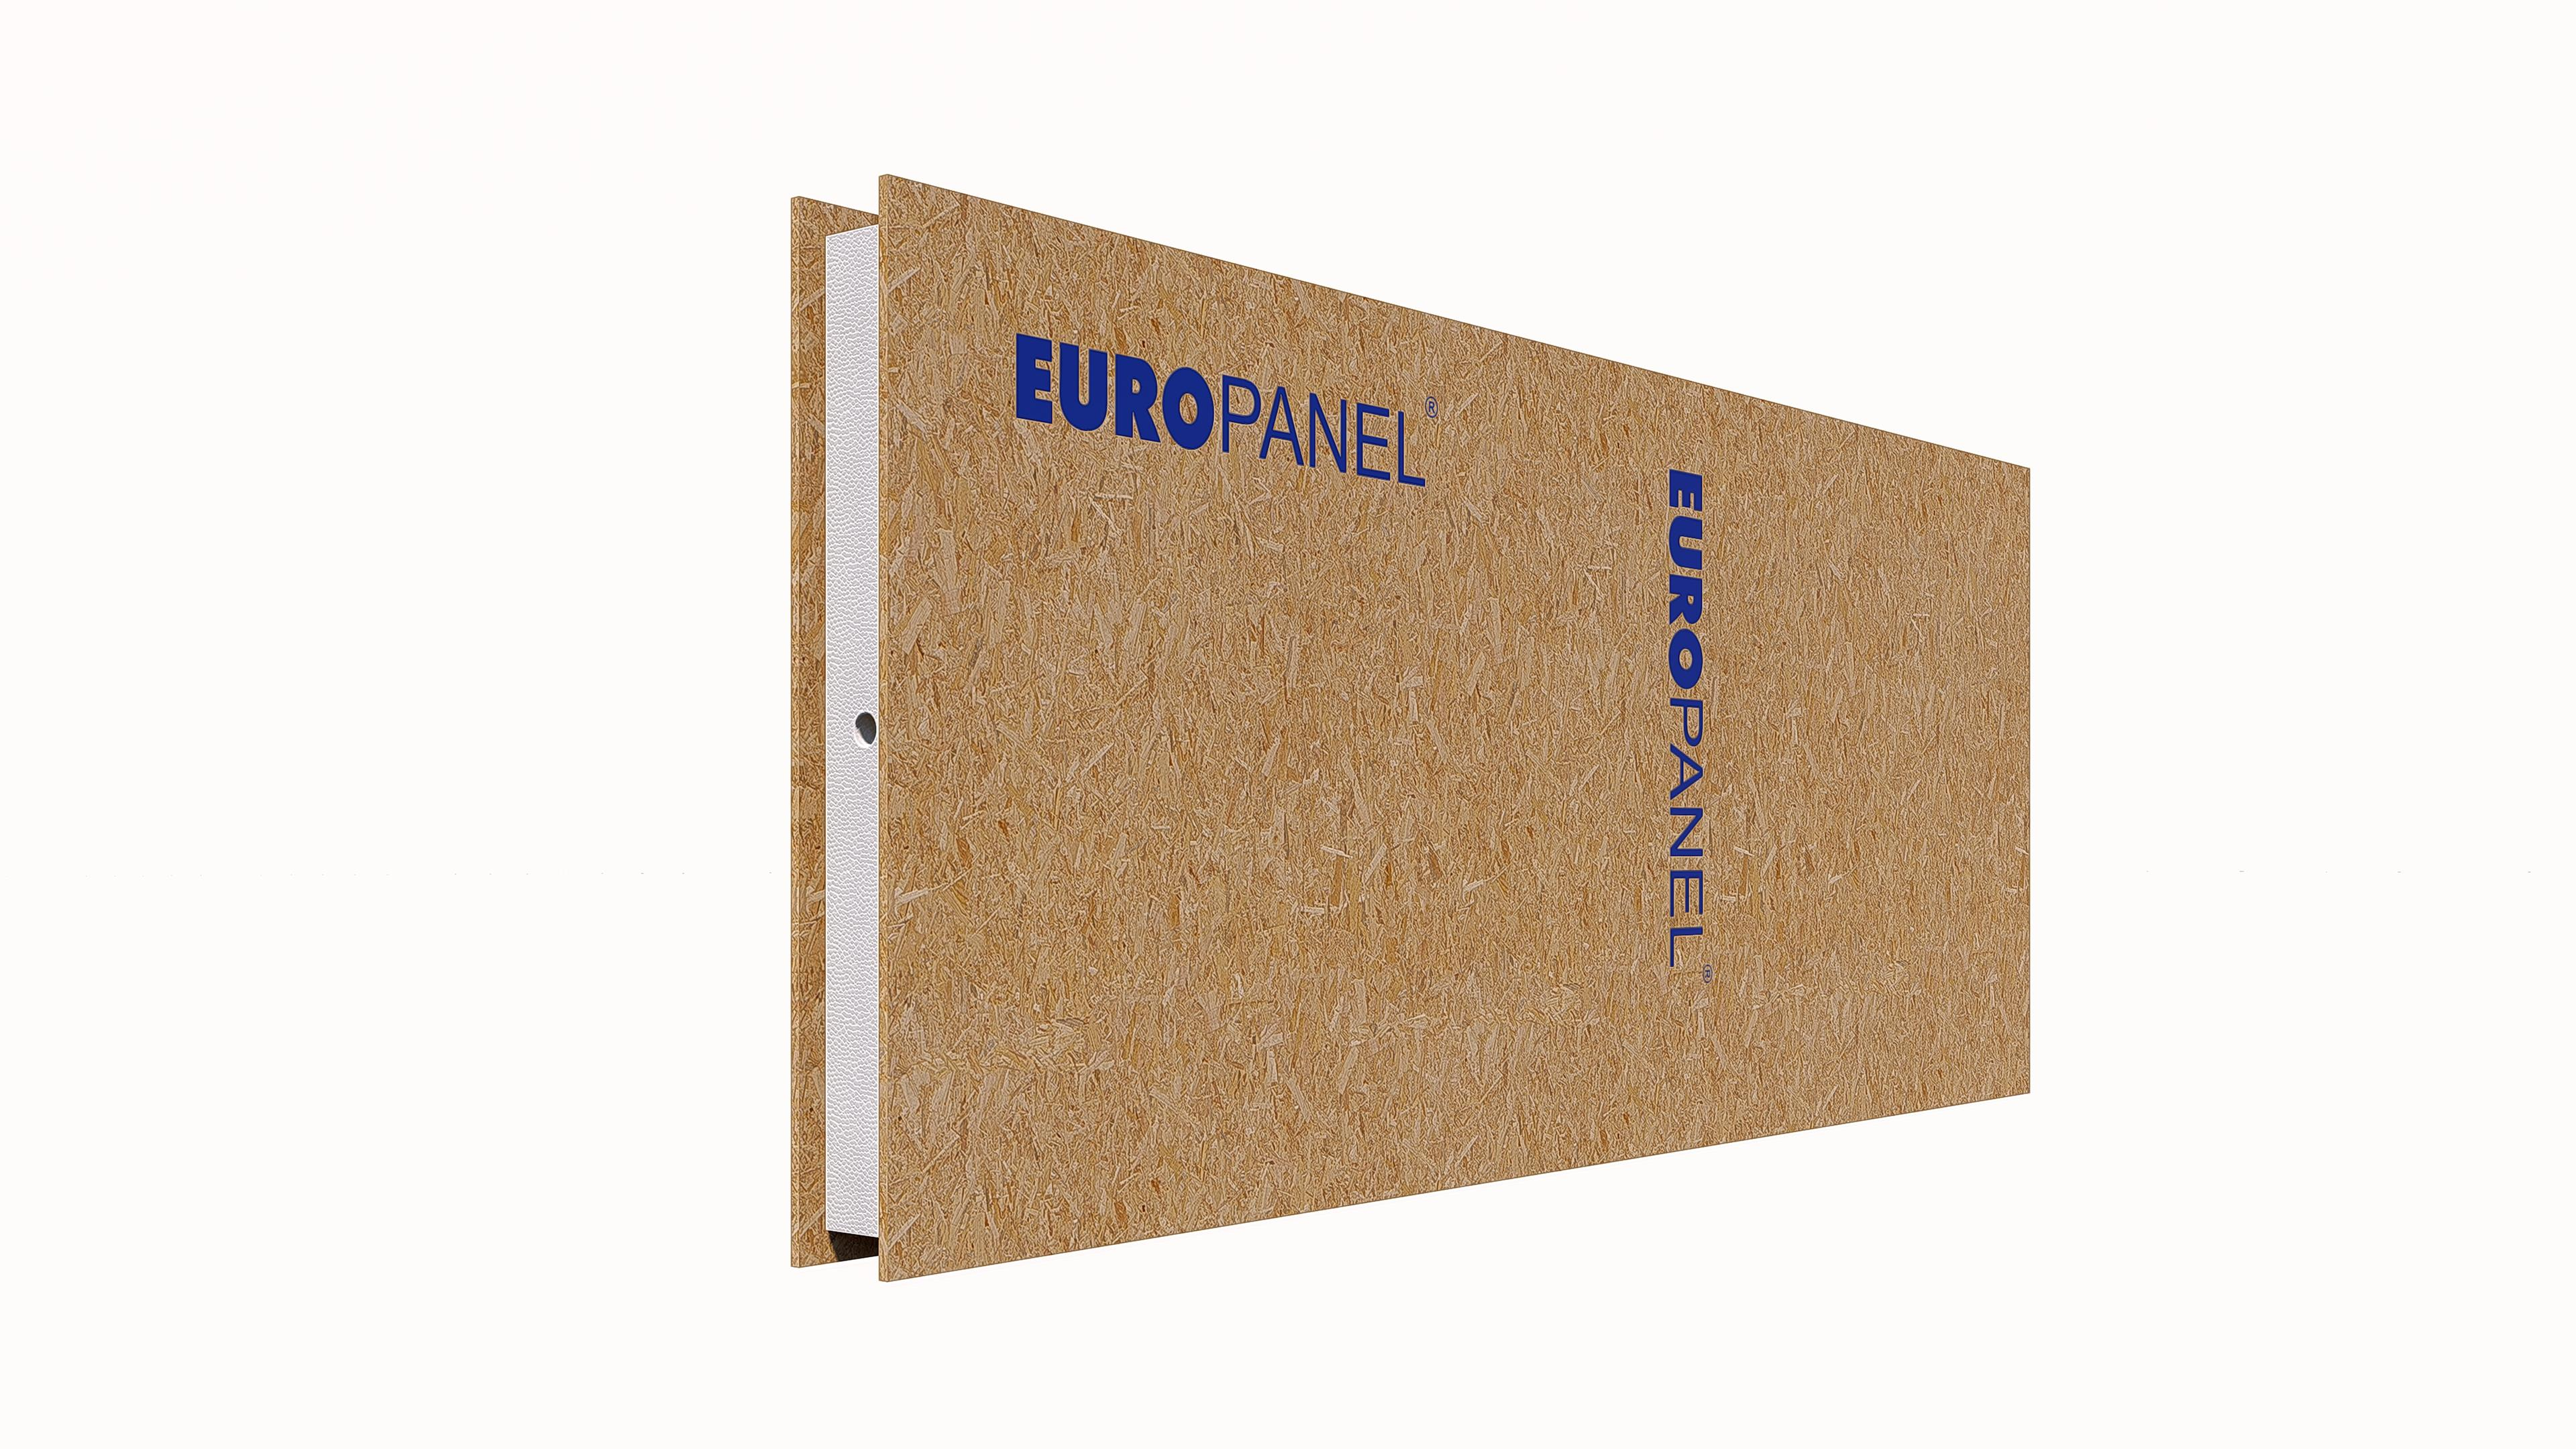 Construction system EUROPANEL